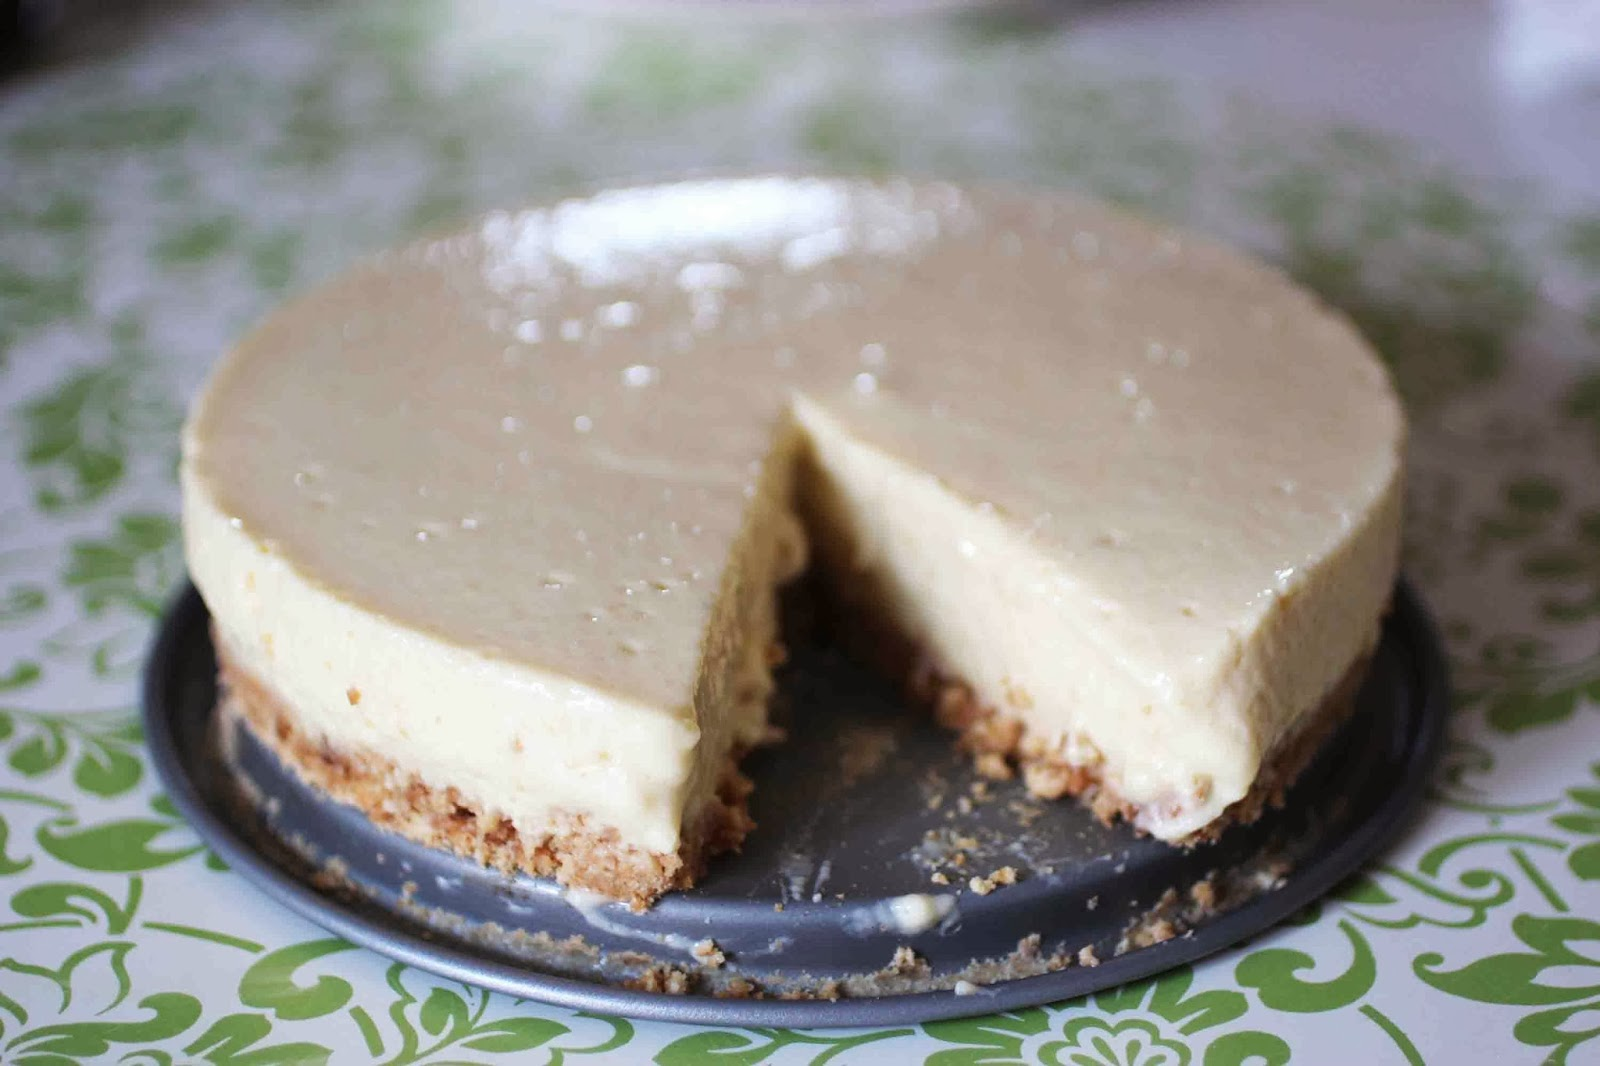 http://camilleenchocolat.blogspot.fr/2014/02/cheesecake-la-mangue-sans-cuisson.html